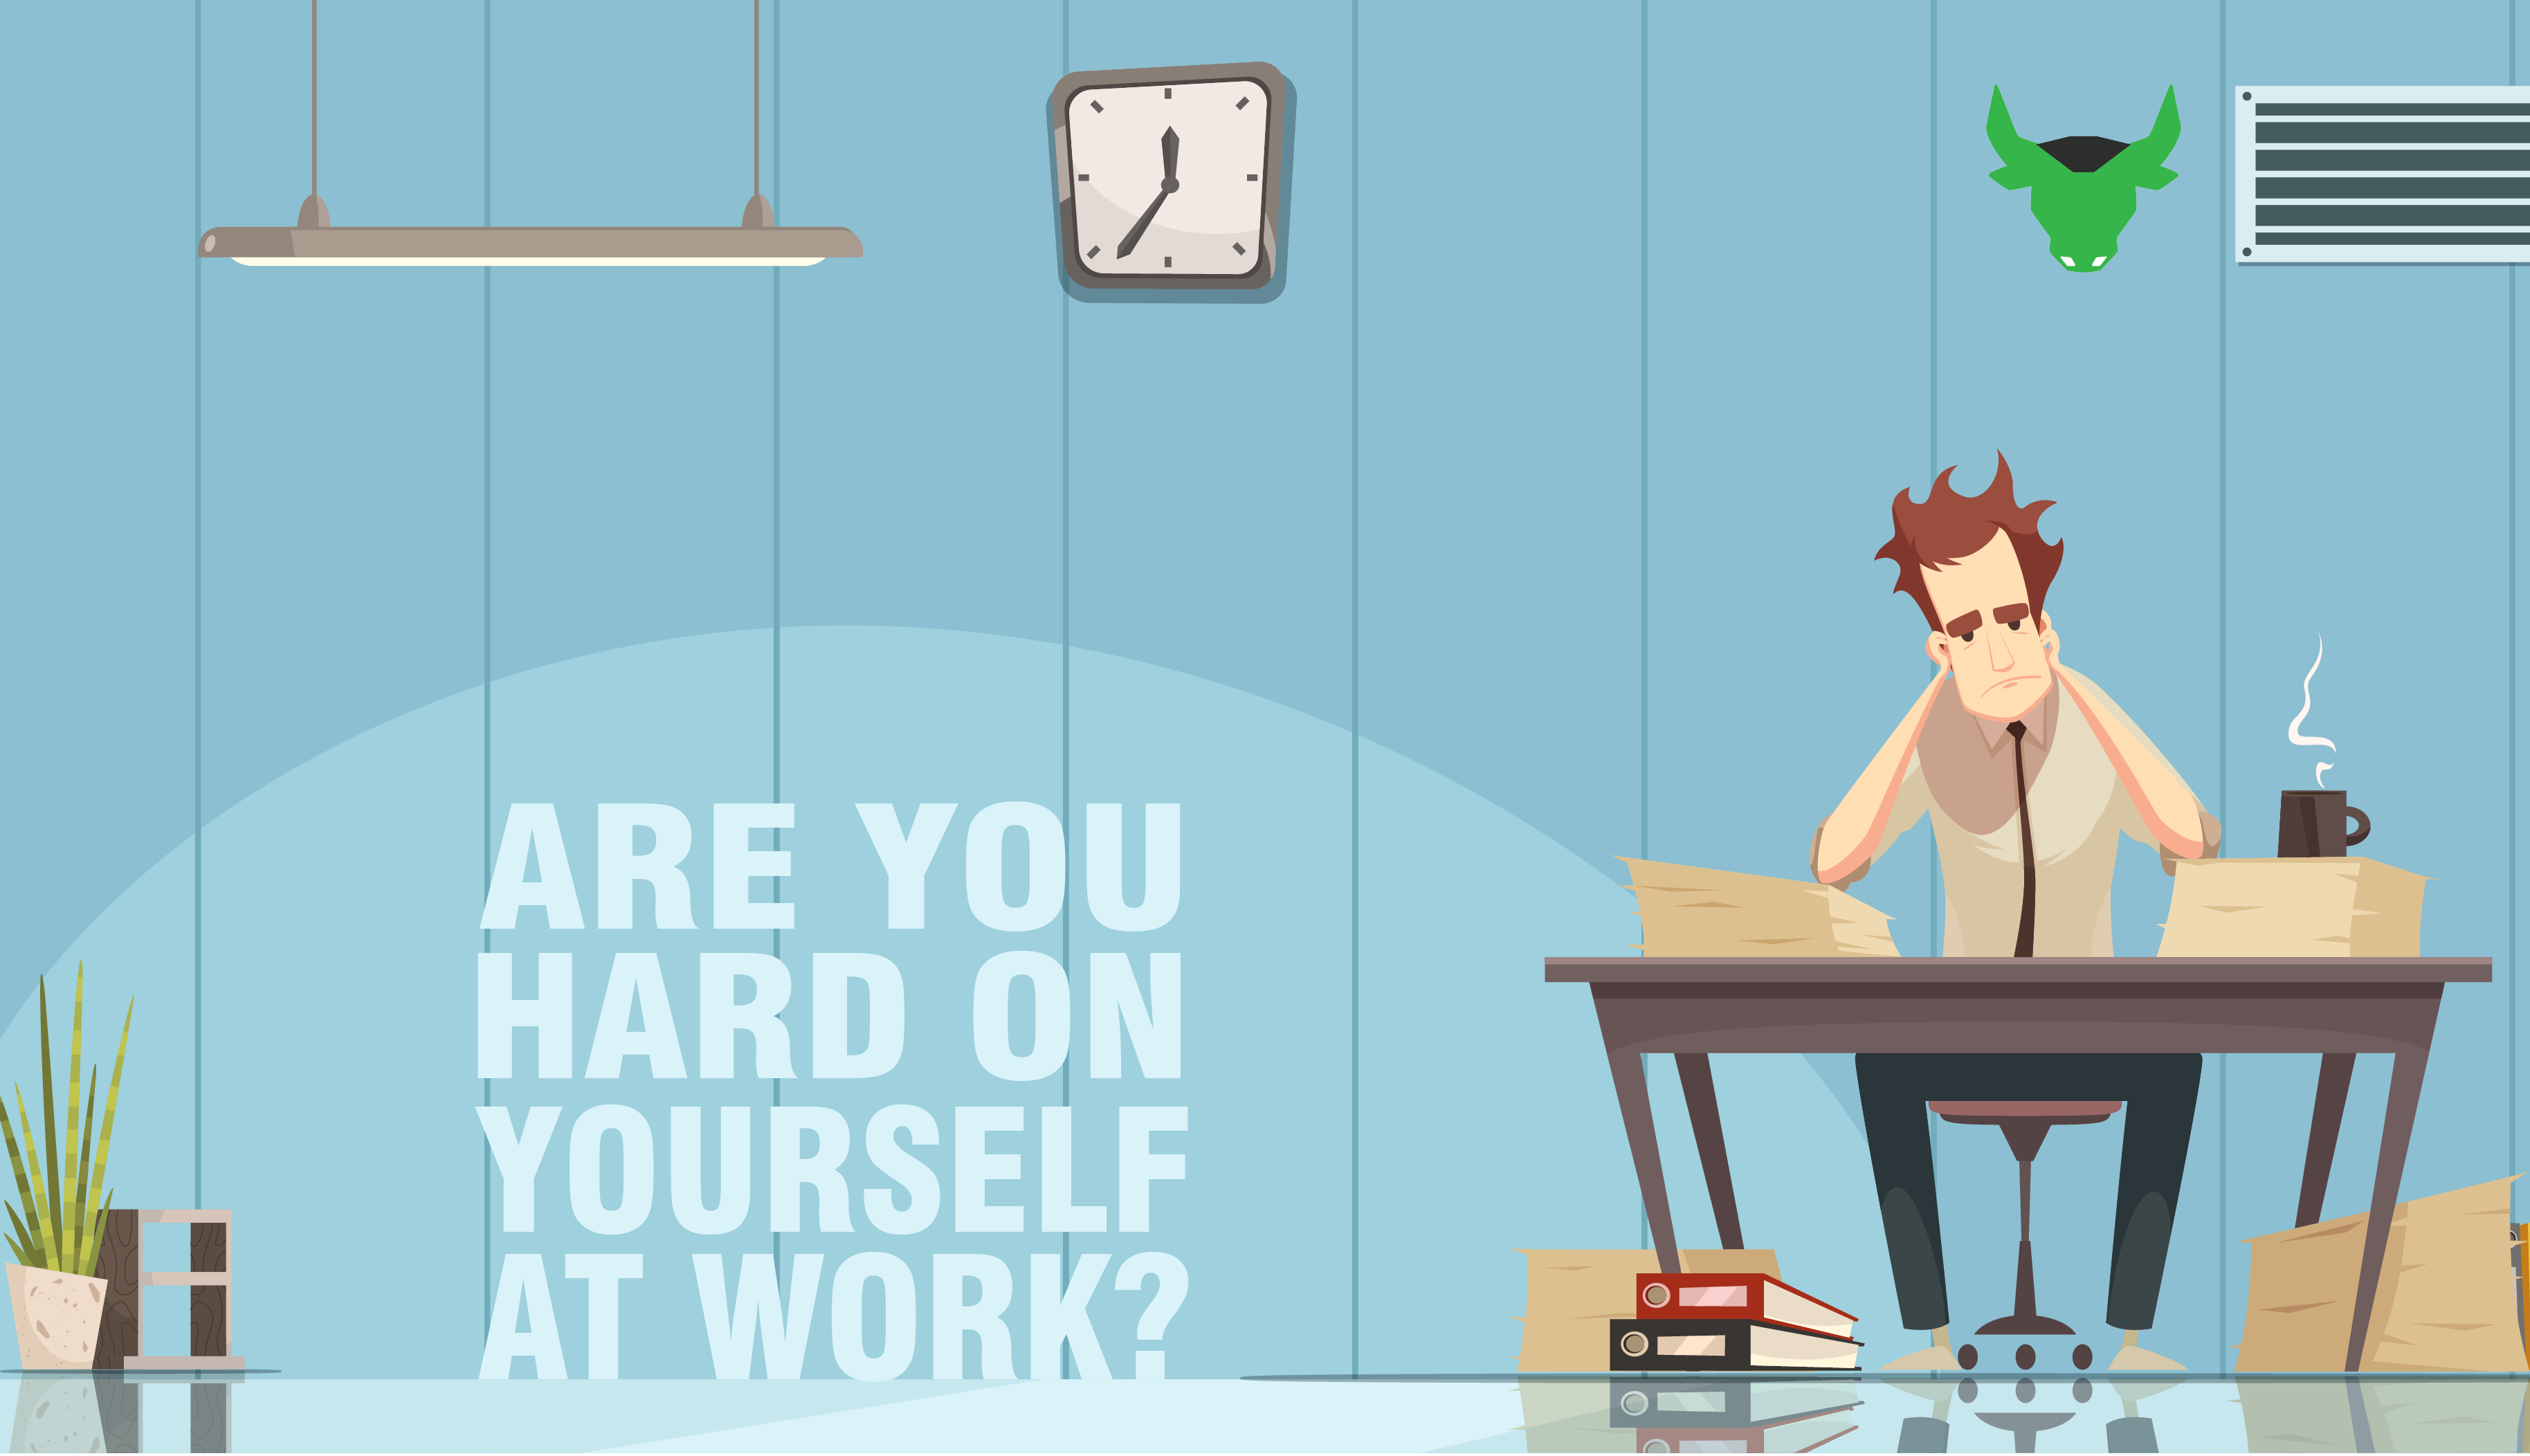 Are you hard on yourself at work?